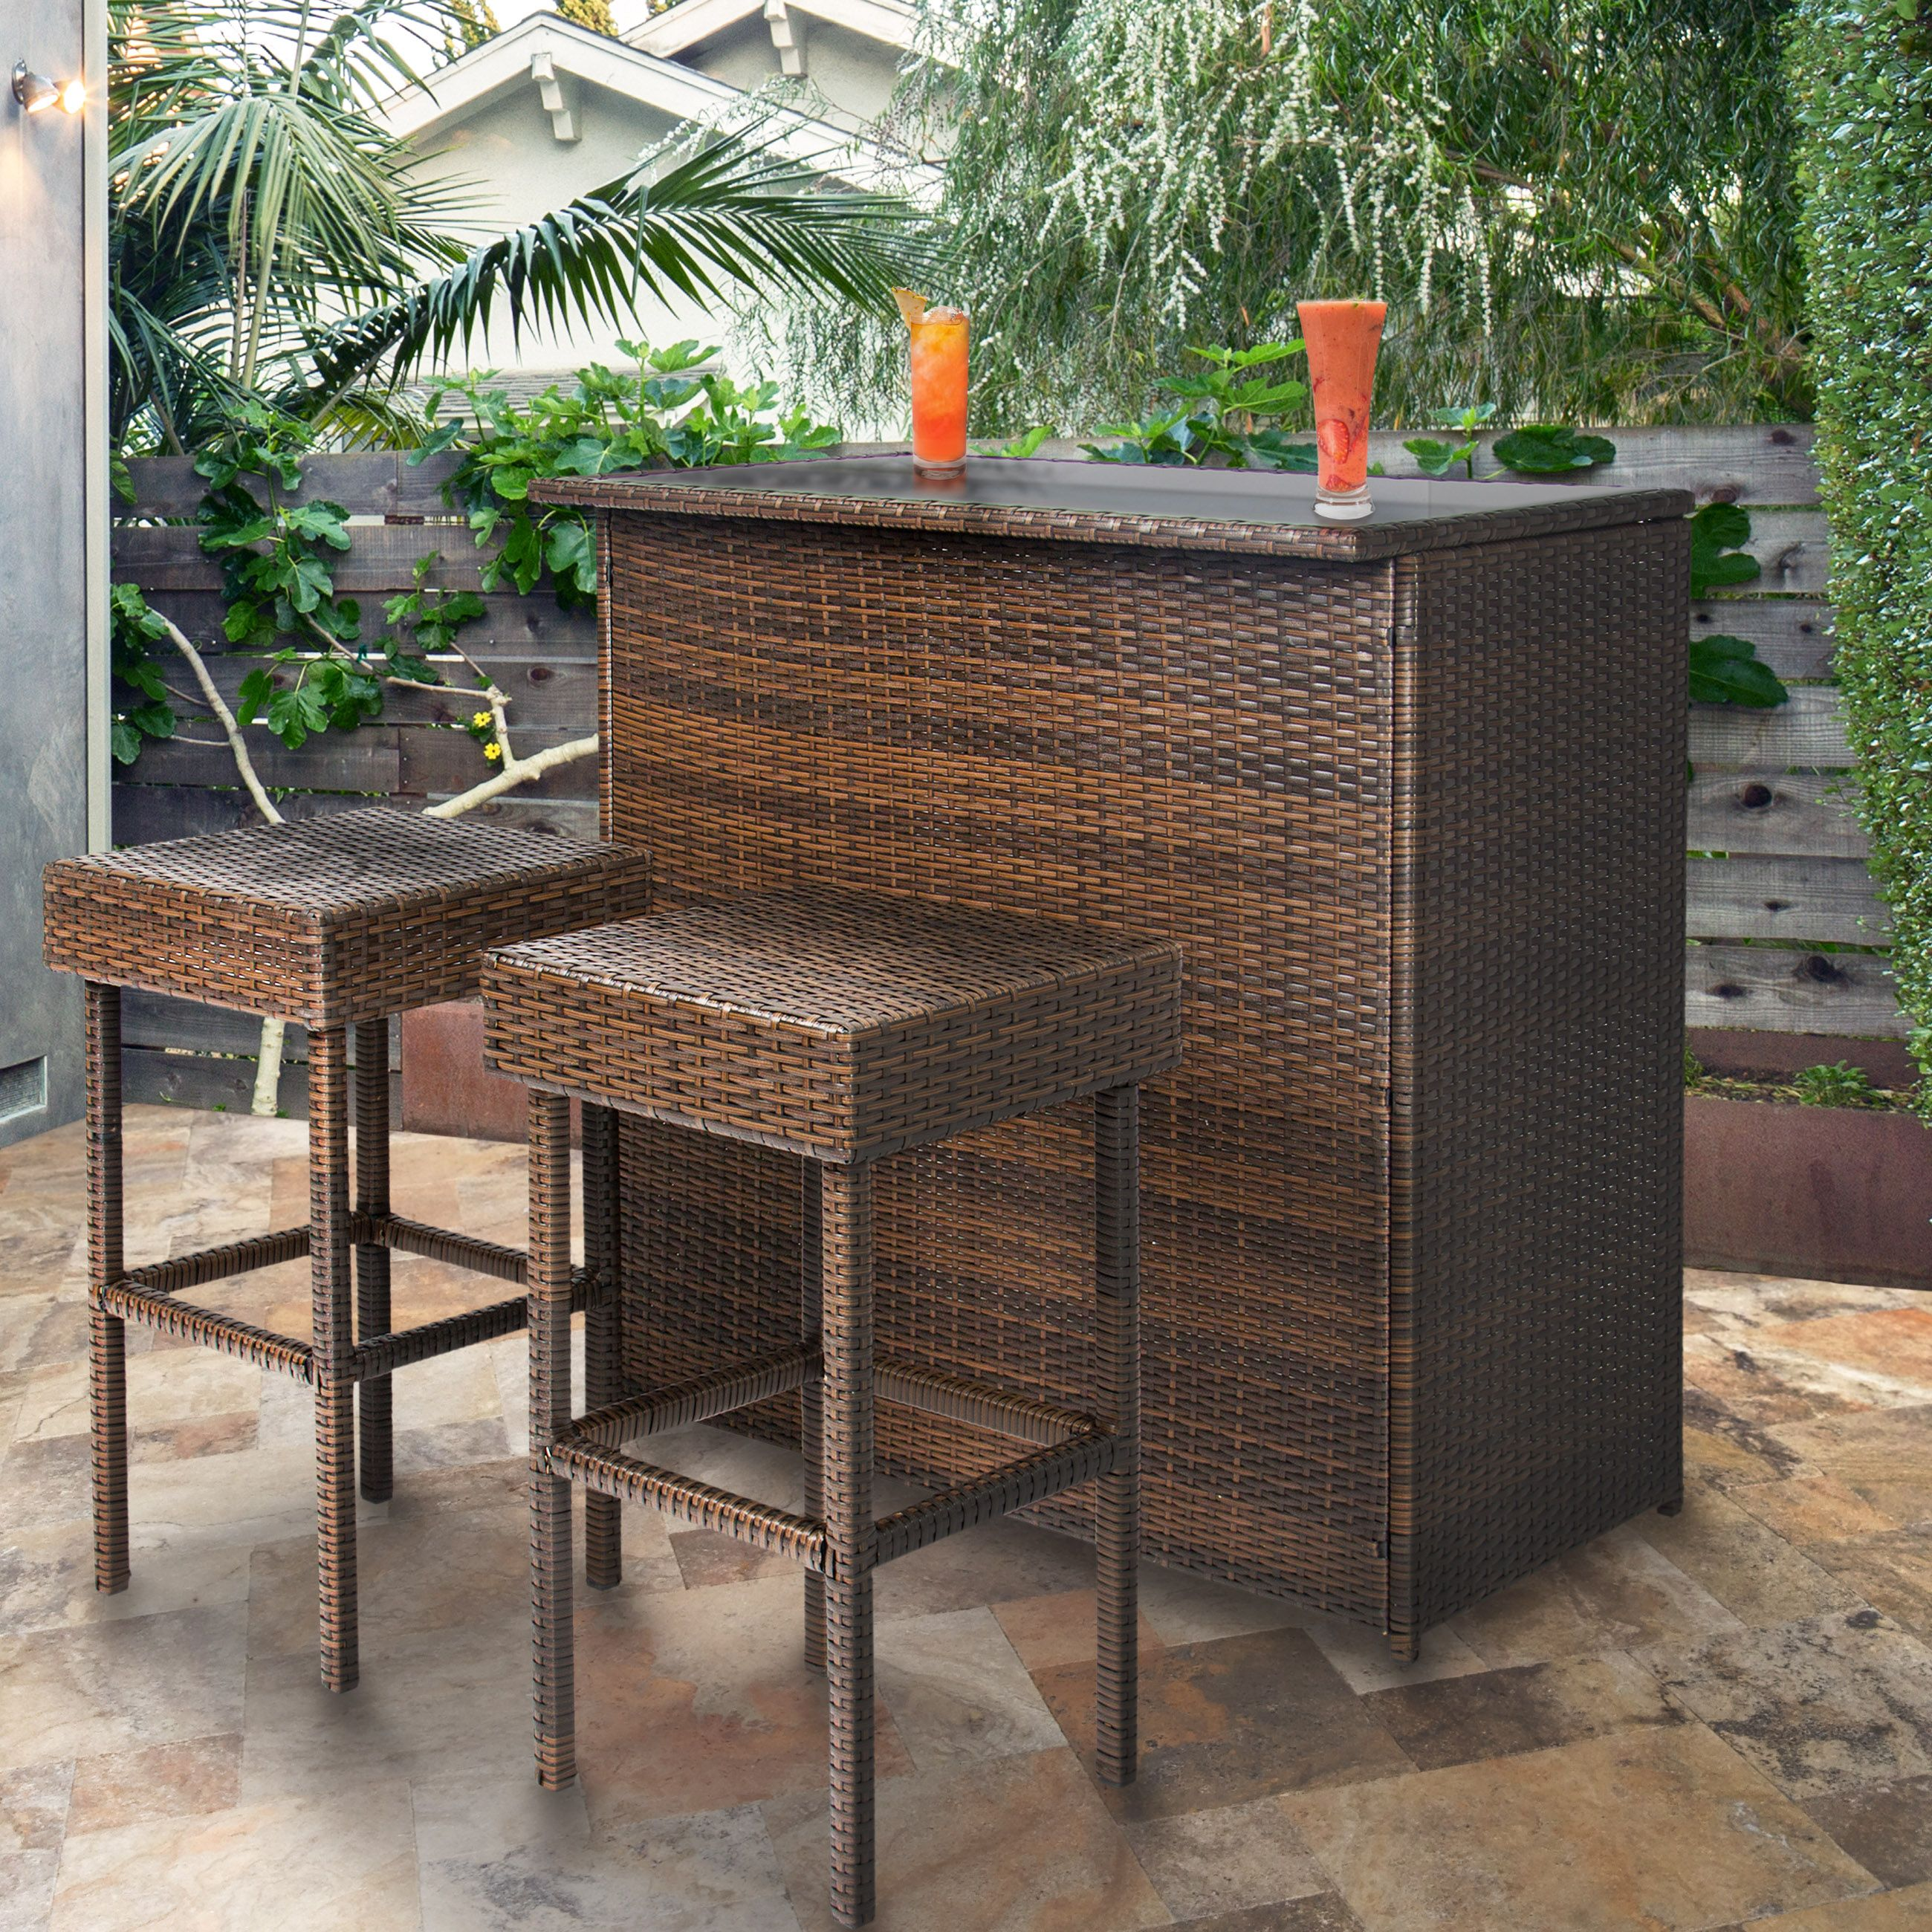 Best Choice Products Wicker 3 Piece Outdoor Bar Set Walmart Com Outdoor Bar Furniture Outdoor Bar Sets Backyard Table